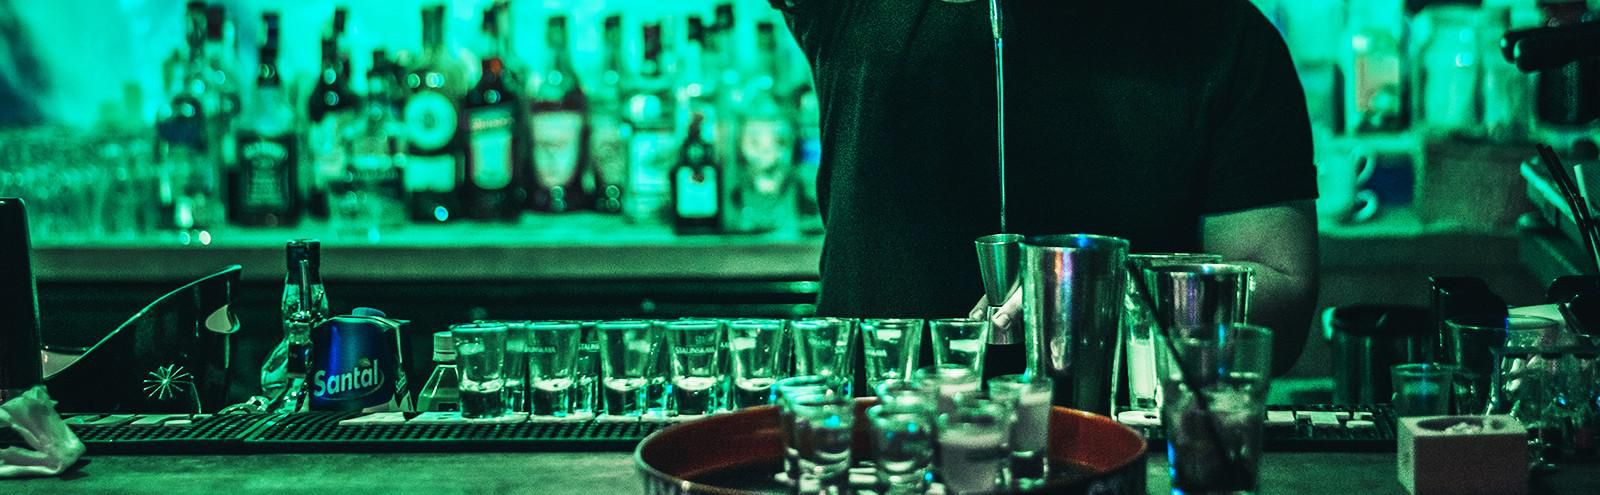 We Asked Bartenders For The Customer Habits They Hate The Most